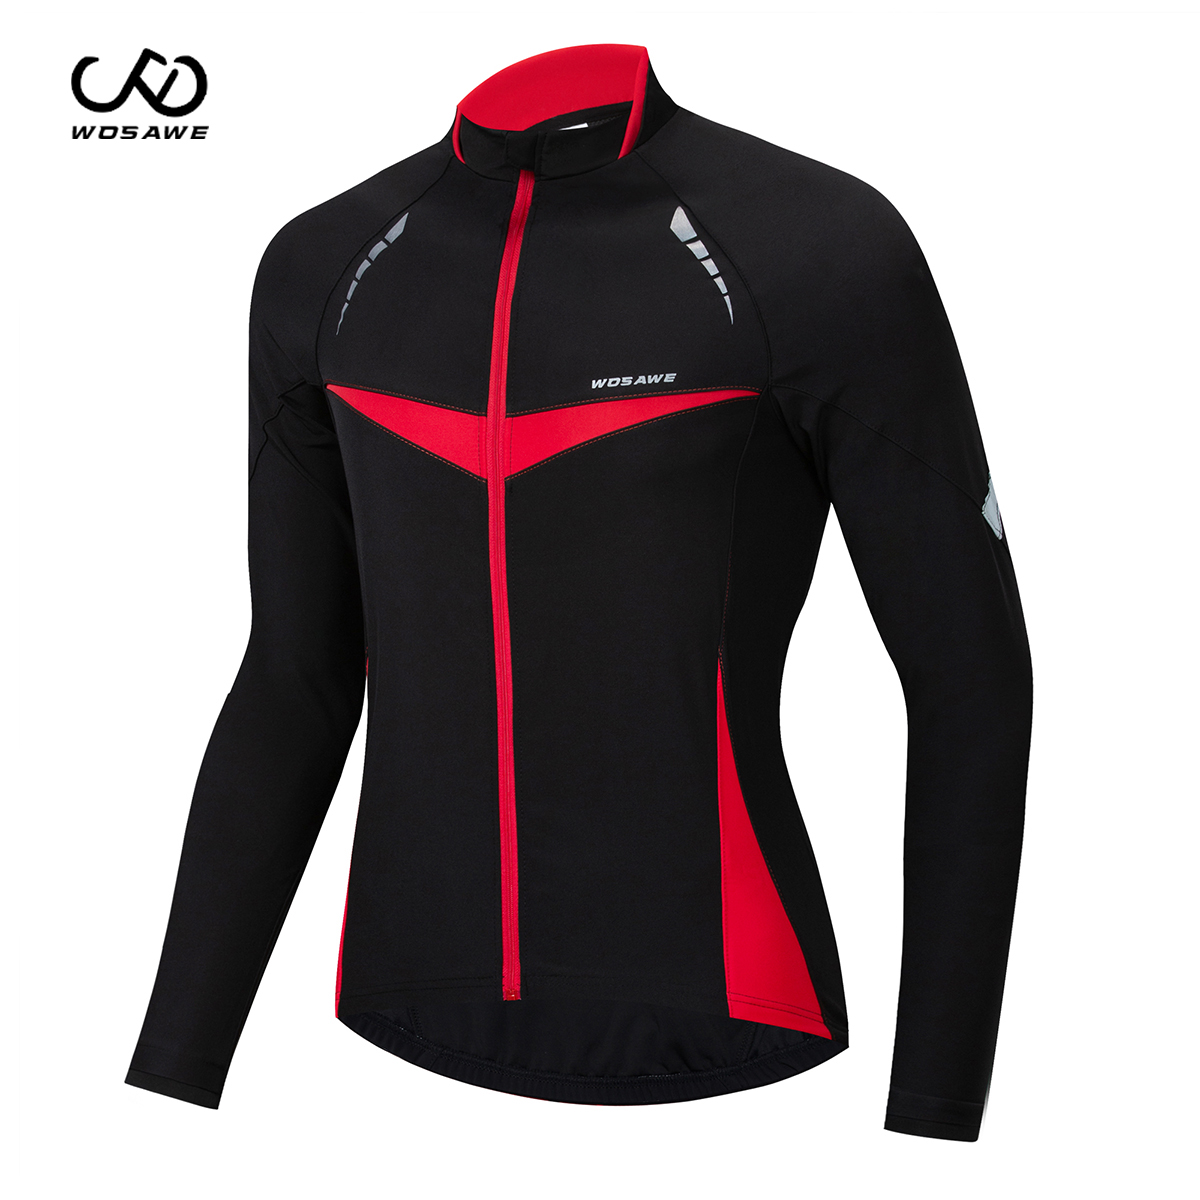 WOSAWE Winter Outdoor Sports Thermal Cycling Jackets MTB Bike Jacket Windproof Water Repellet riding Coat Bike Cycle Clothing Pakistan